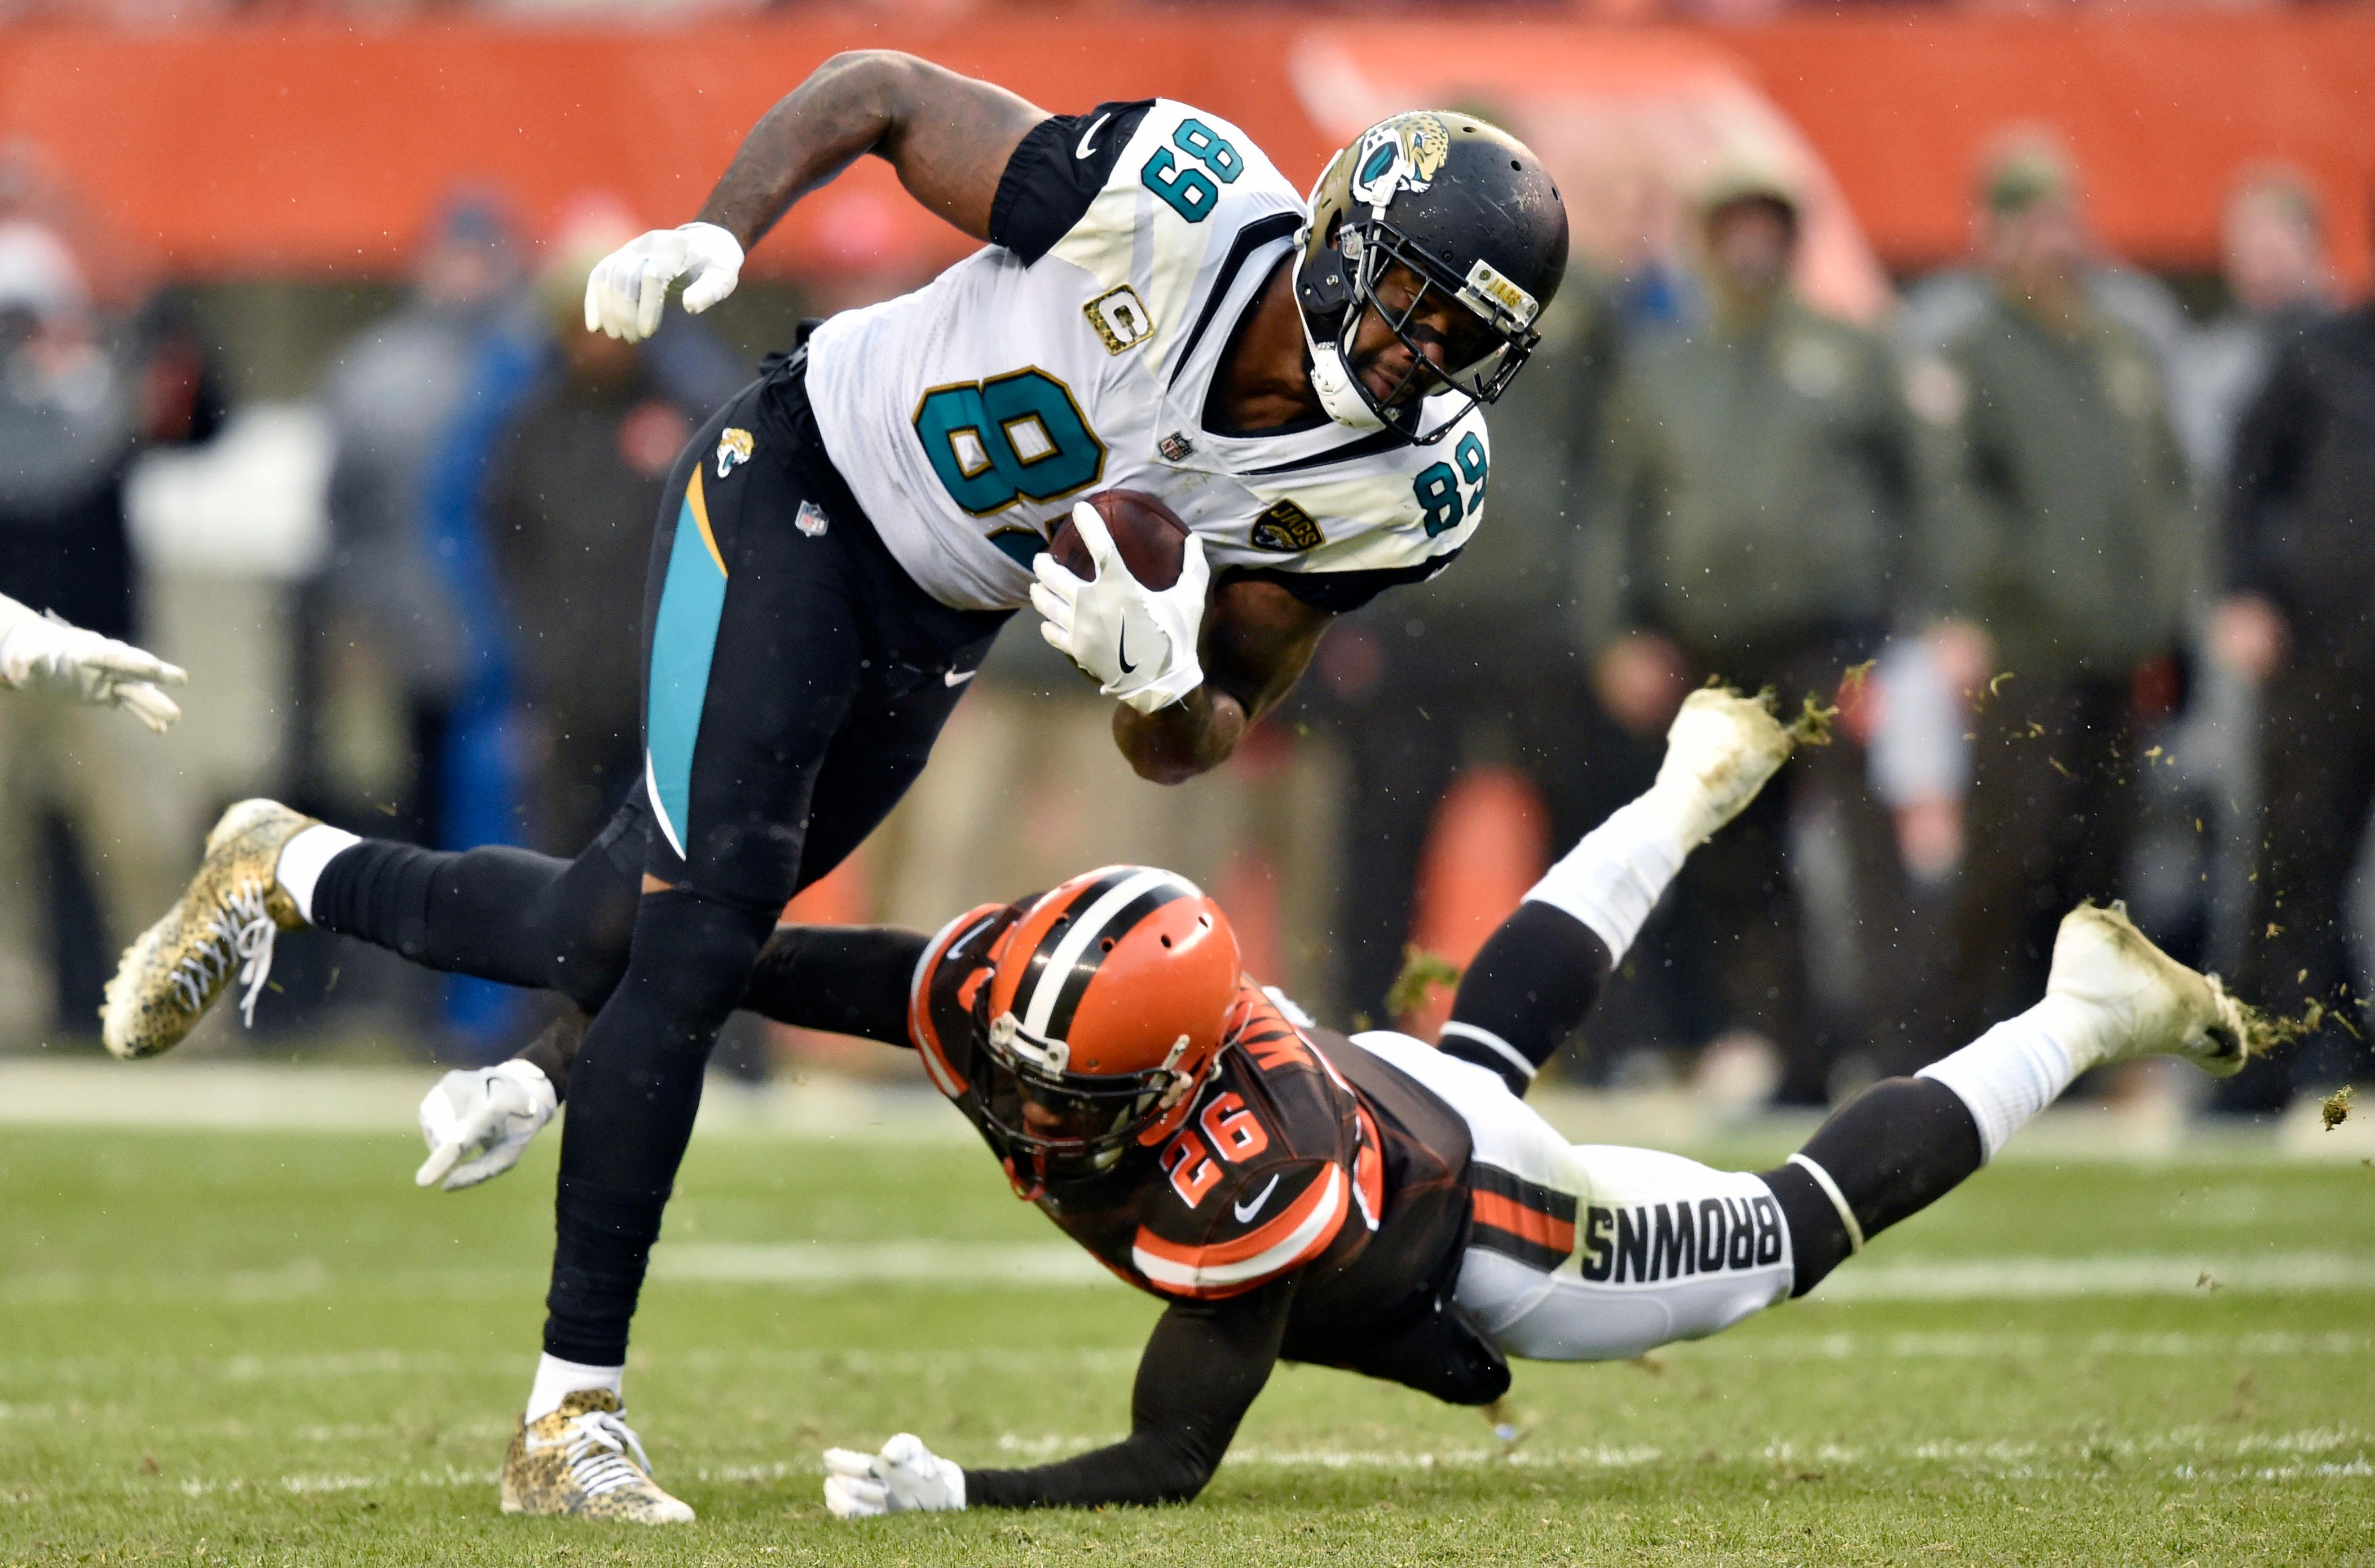 Jacksonville Jaguars tight end Marcedes Lewis (89) is tackled by Cleveland Browns strong safety Derrick Kindred (26) in the first half of an NFL football game, Sunday, Nov. 19, 2017, in Cleveland. (AP Photo/David Richard)